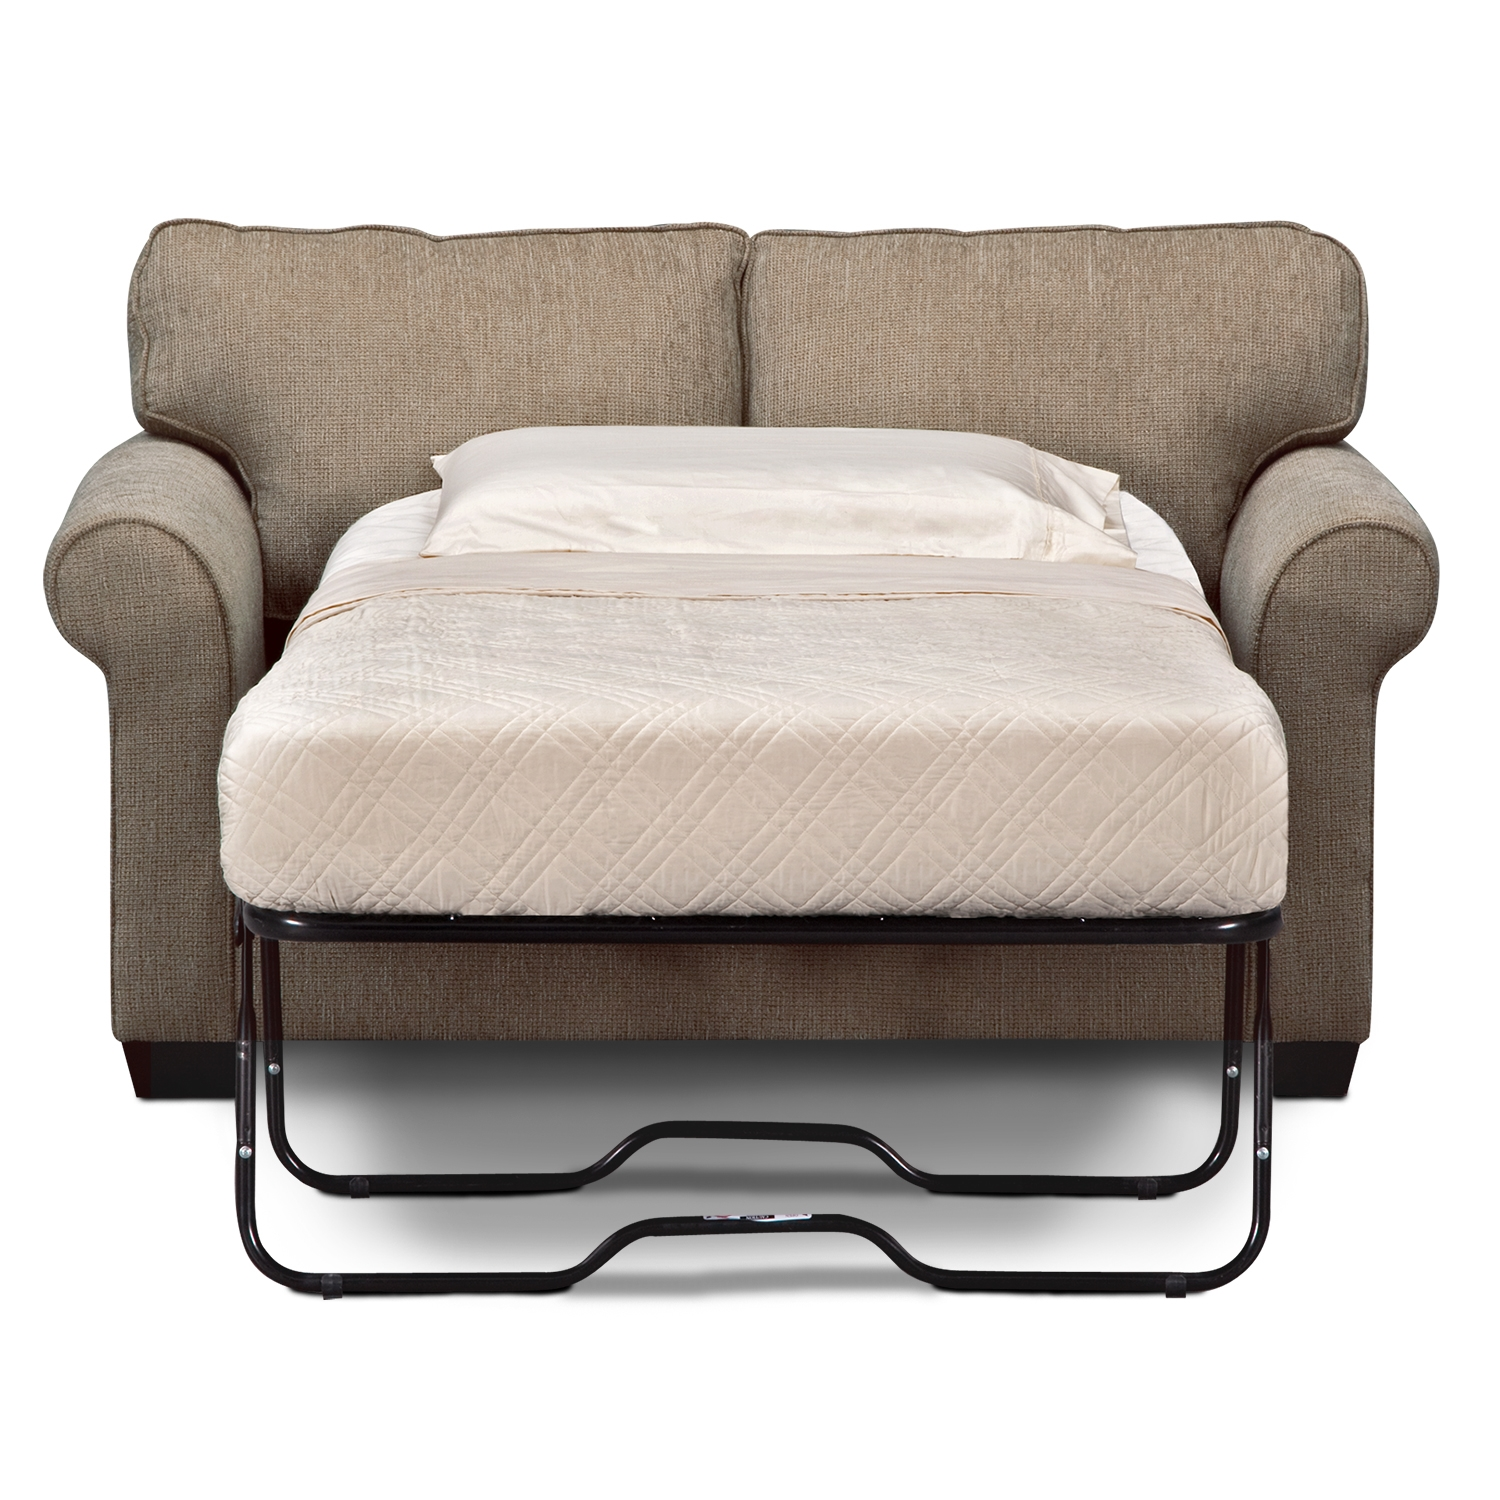 Image of: Twin Sleeper Chair Bed Design